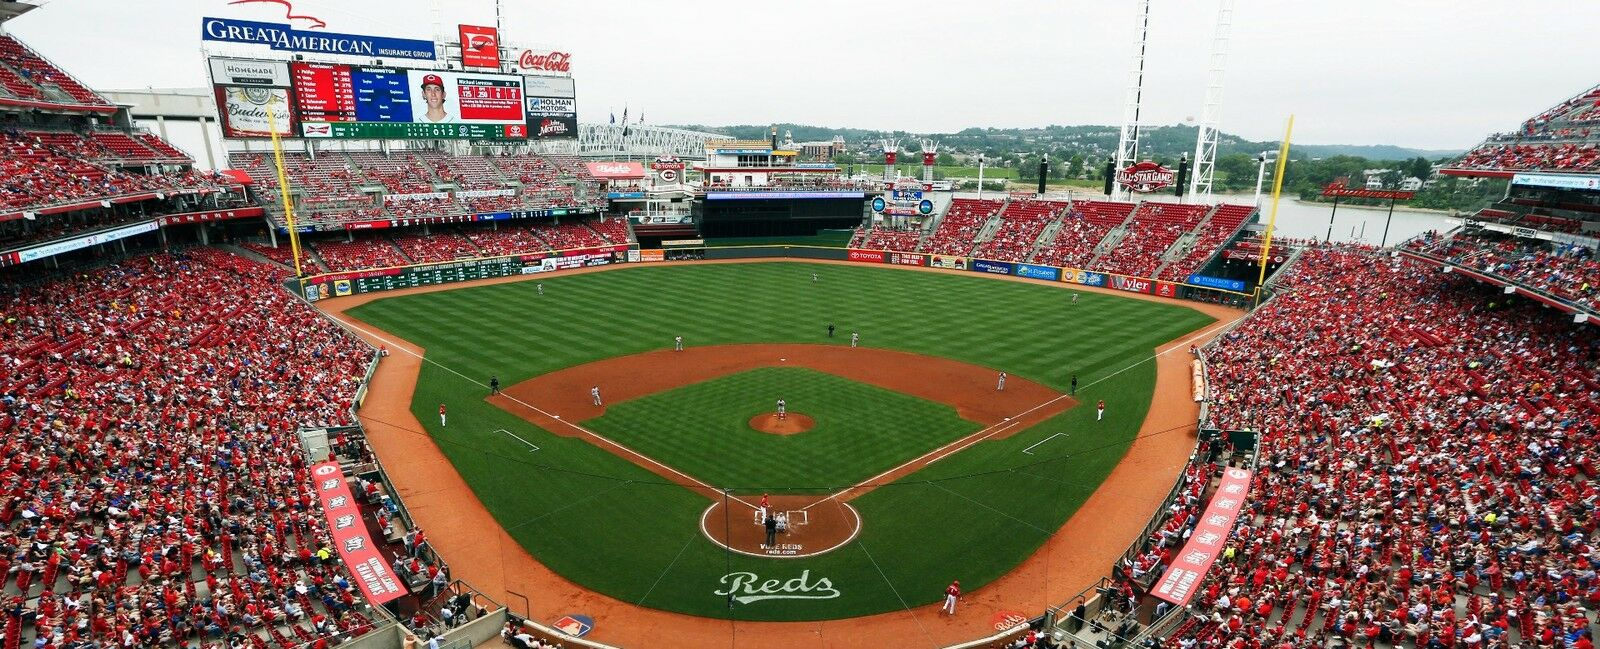 St. Louis Cardinals at Cincinnati Reds Tickets (Fireworks Friday)